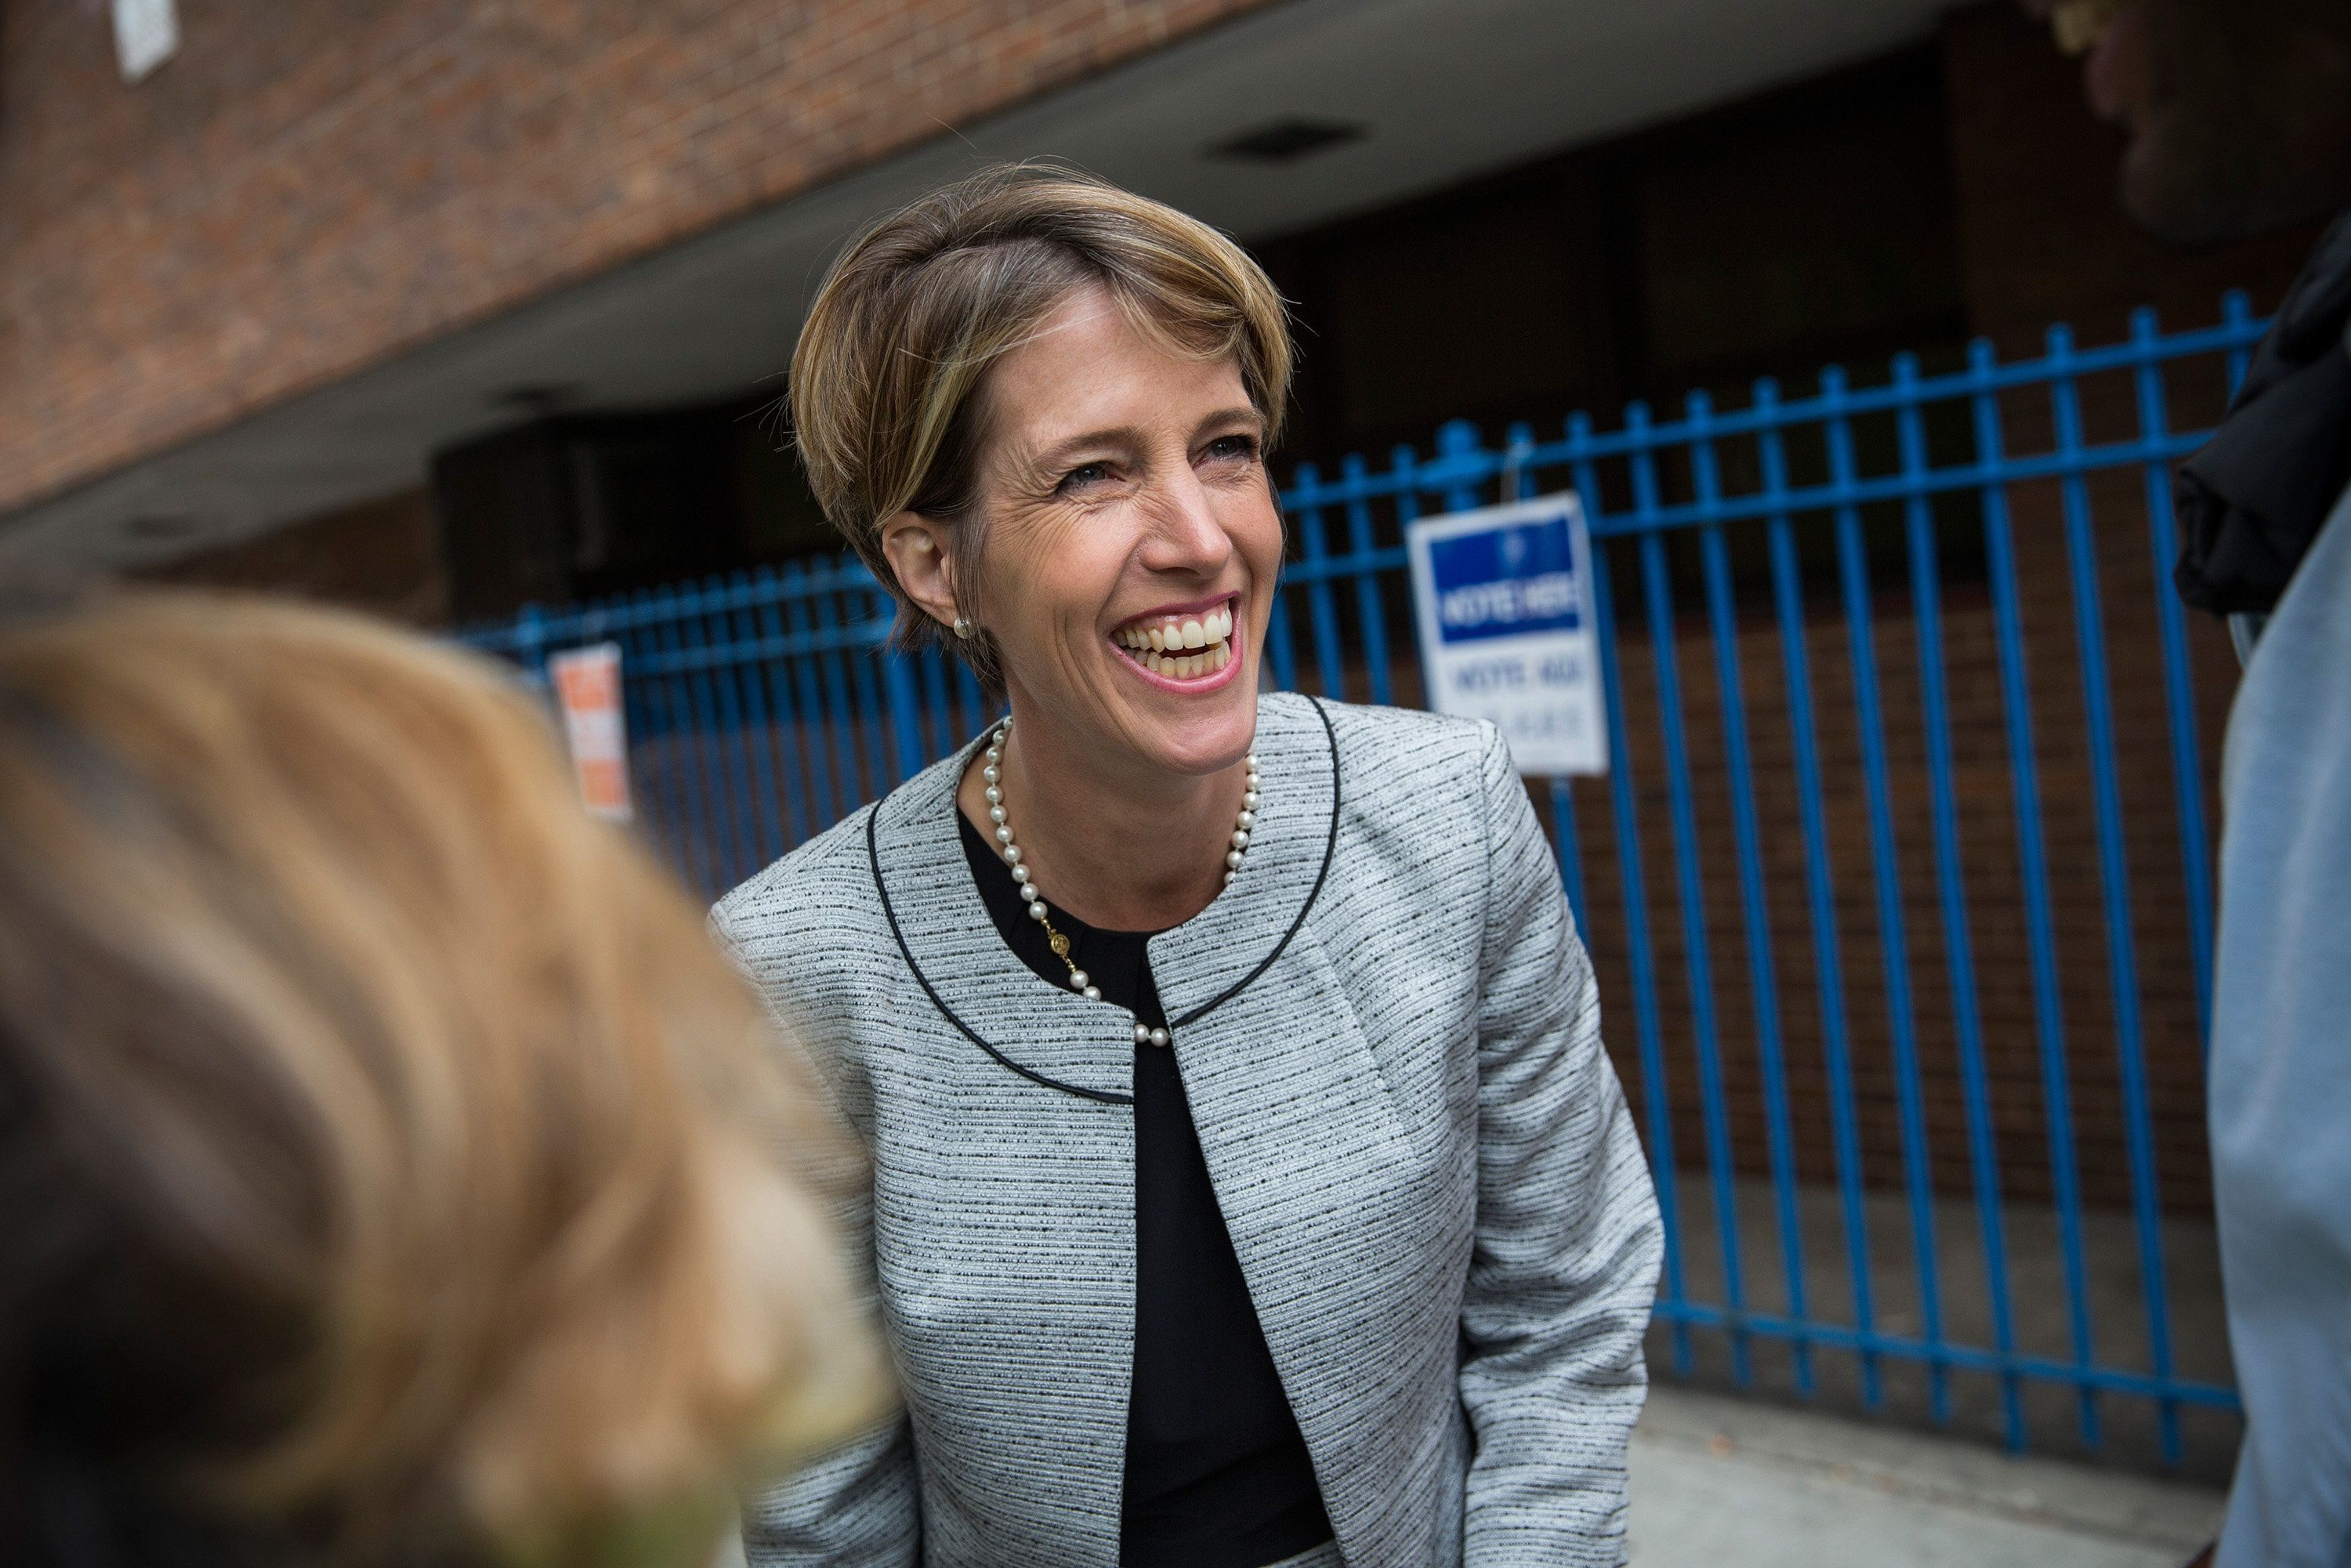 Dean campaign organizer Zephyr Teachout passed along the accusations against Johnson to higher-ups in the campaign but felt l